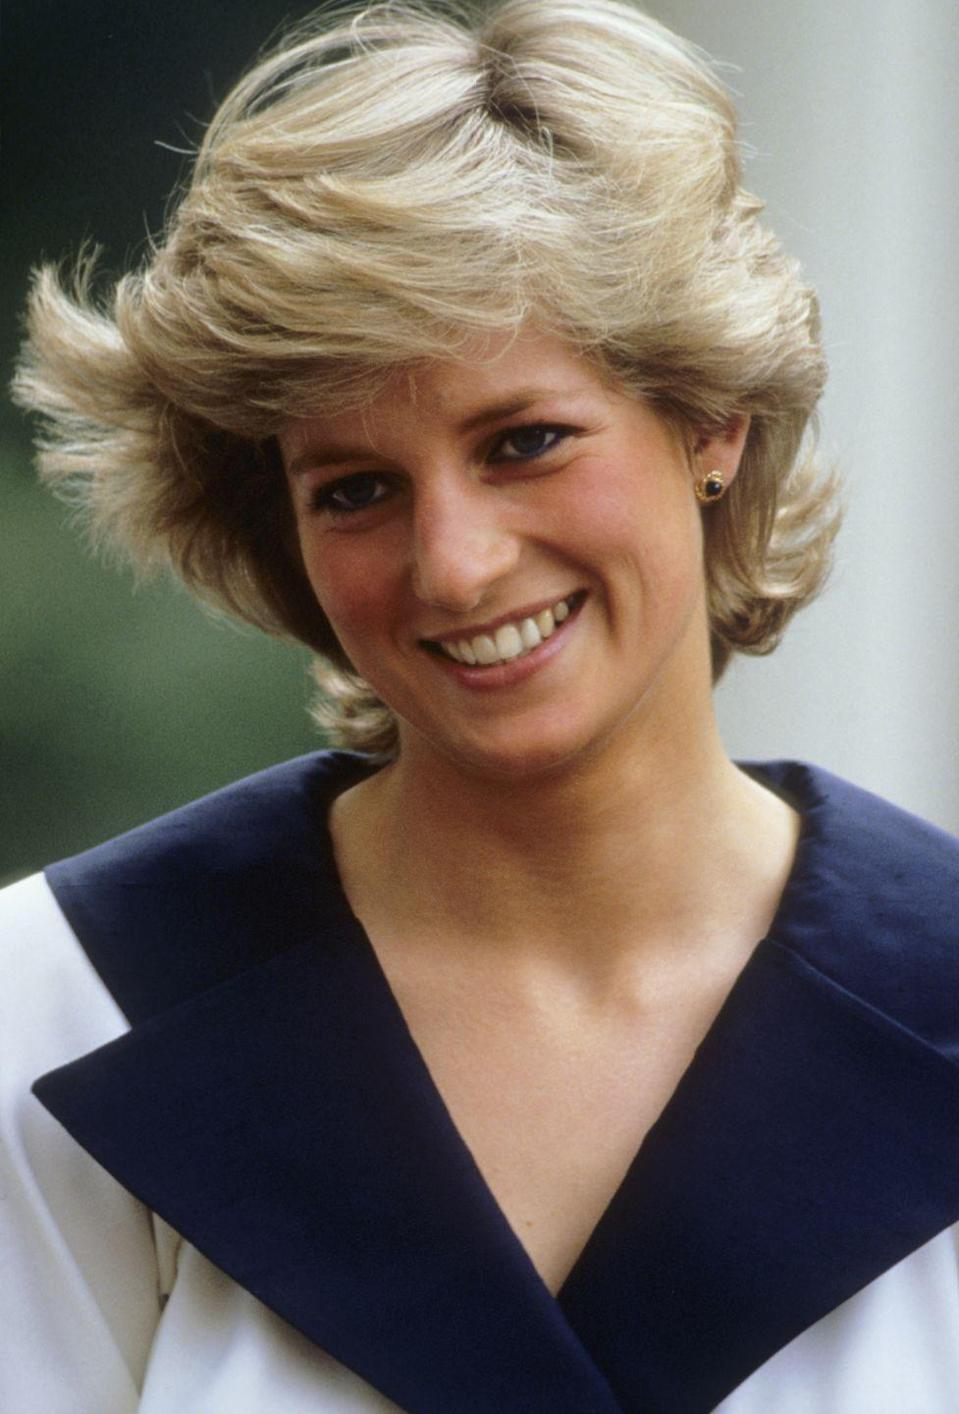 <p>Princess Diana at the Queen Mother's 87th birthday celebrations on August 4, 1987 wearing an oversized navy notch collar.</p>